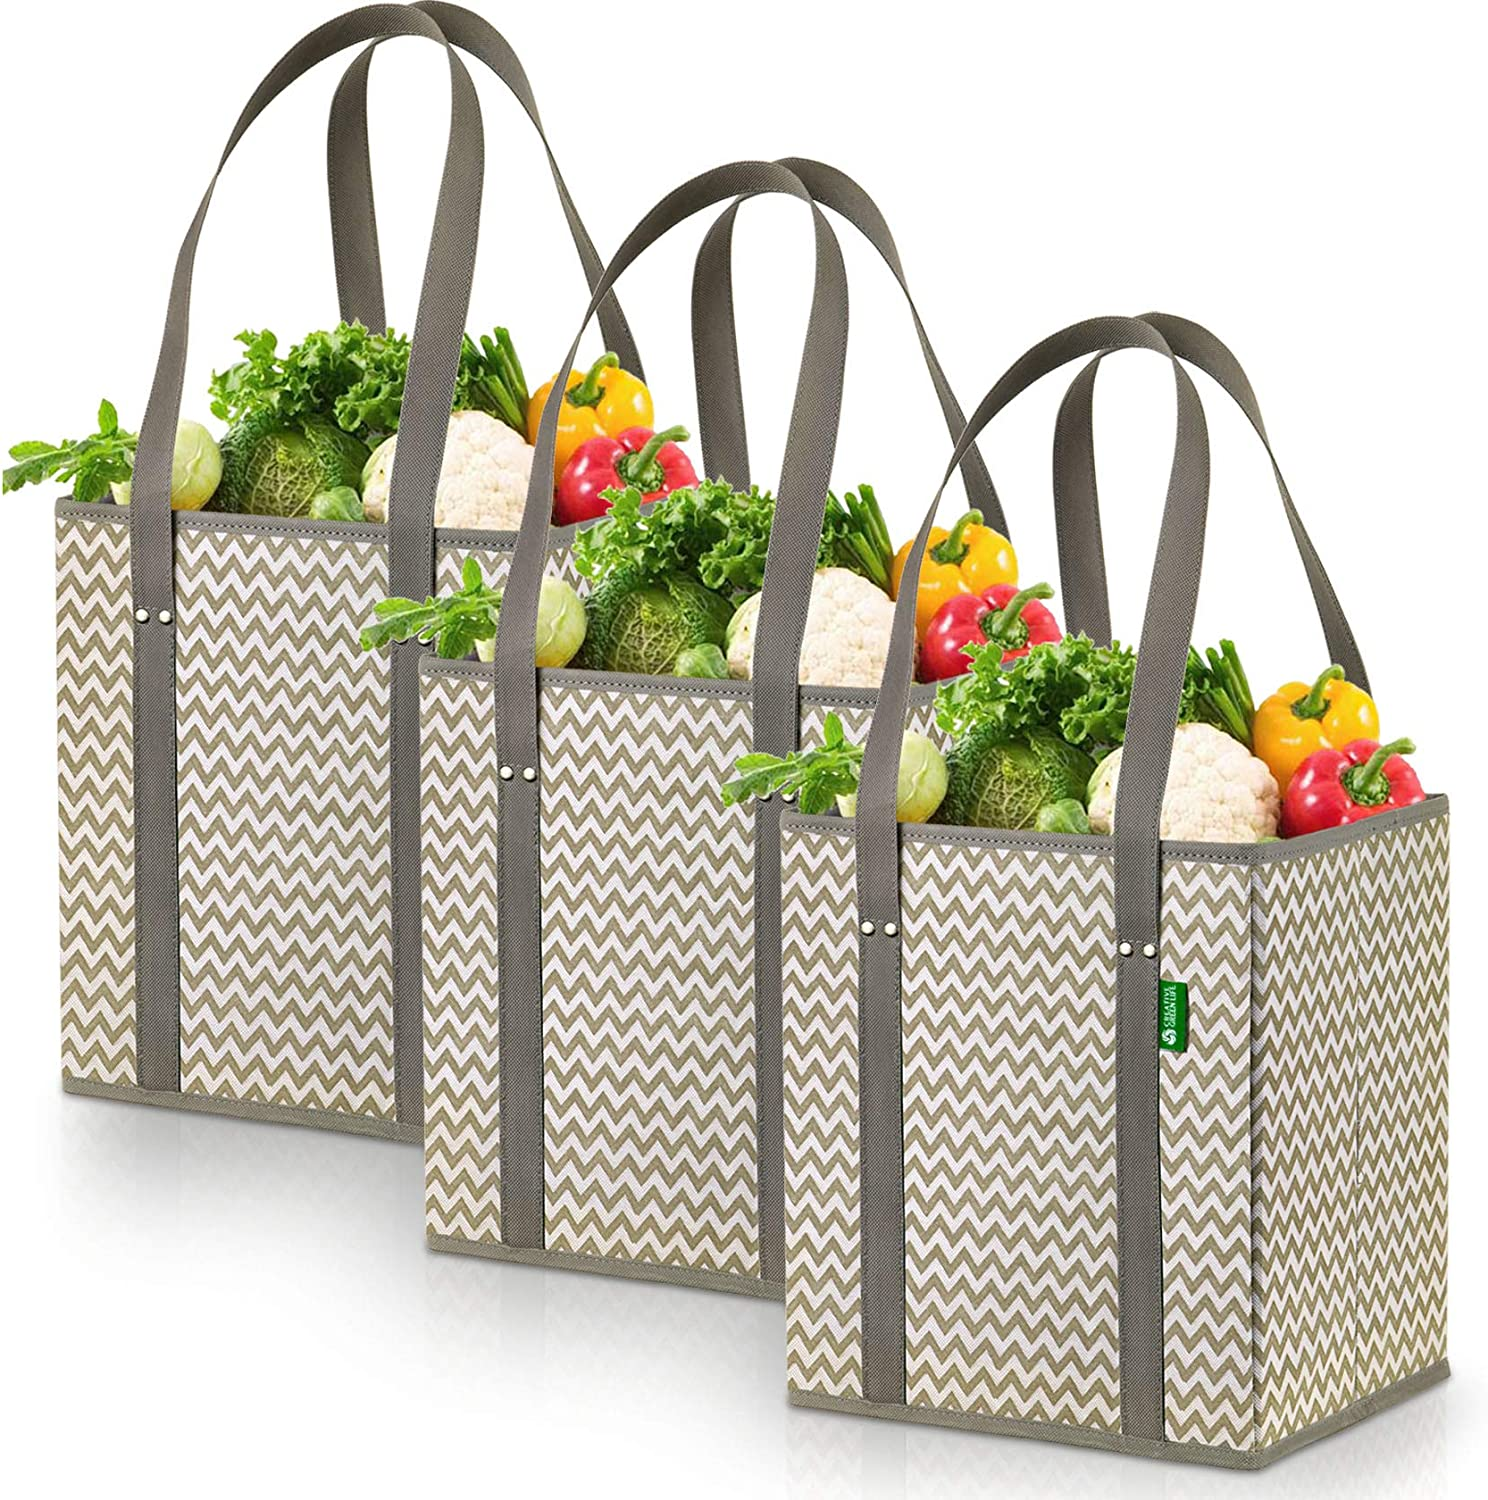 New Kids 3 Pack Shopping Bags